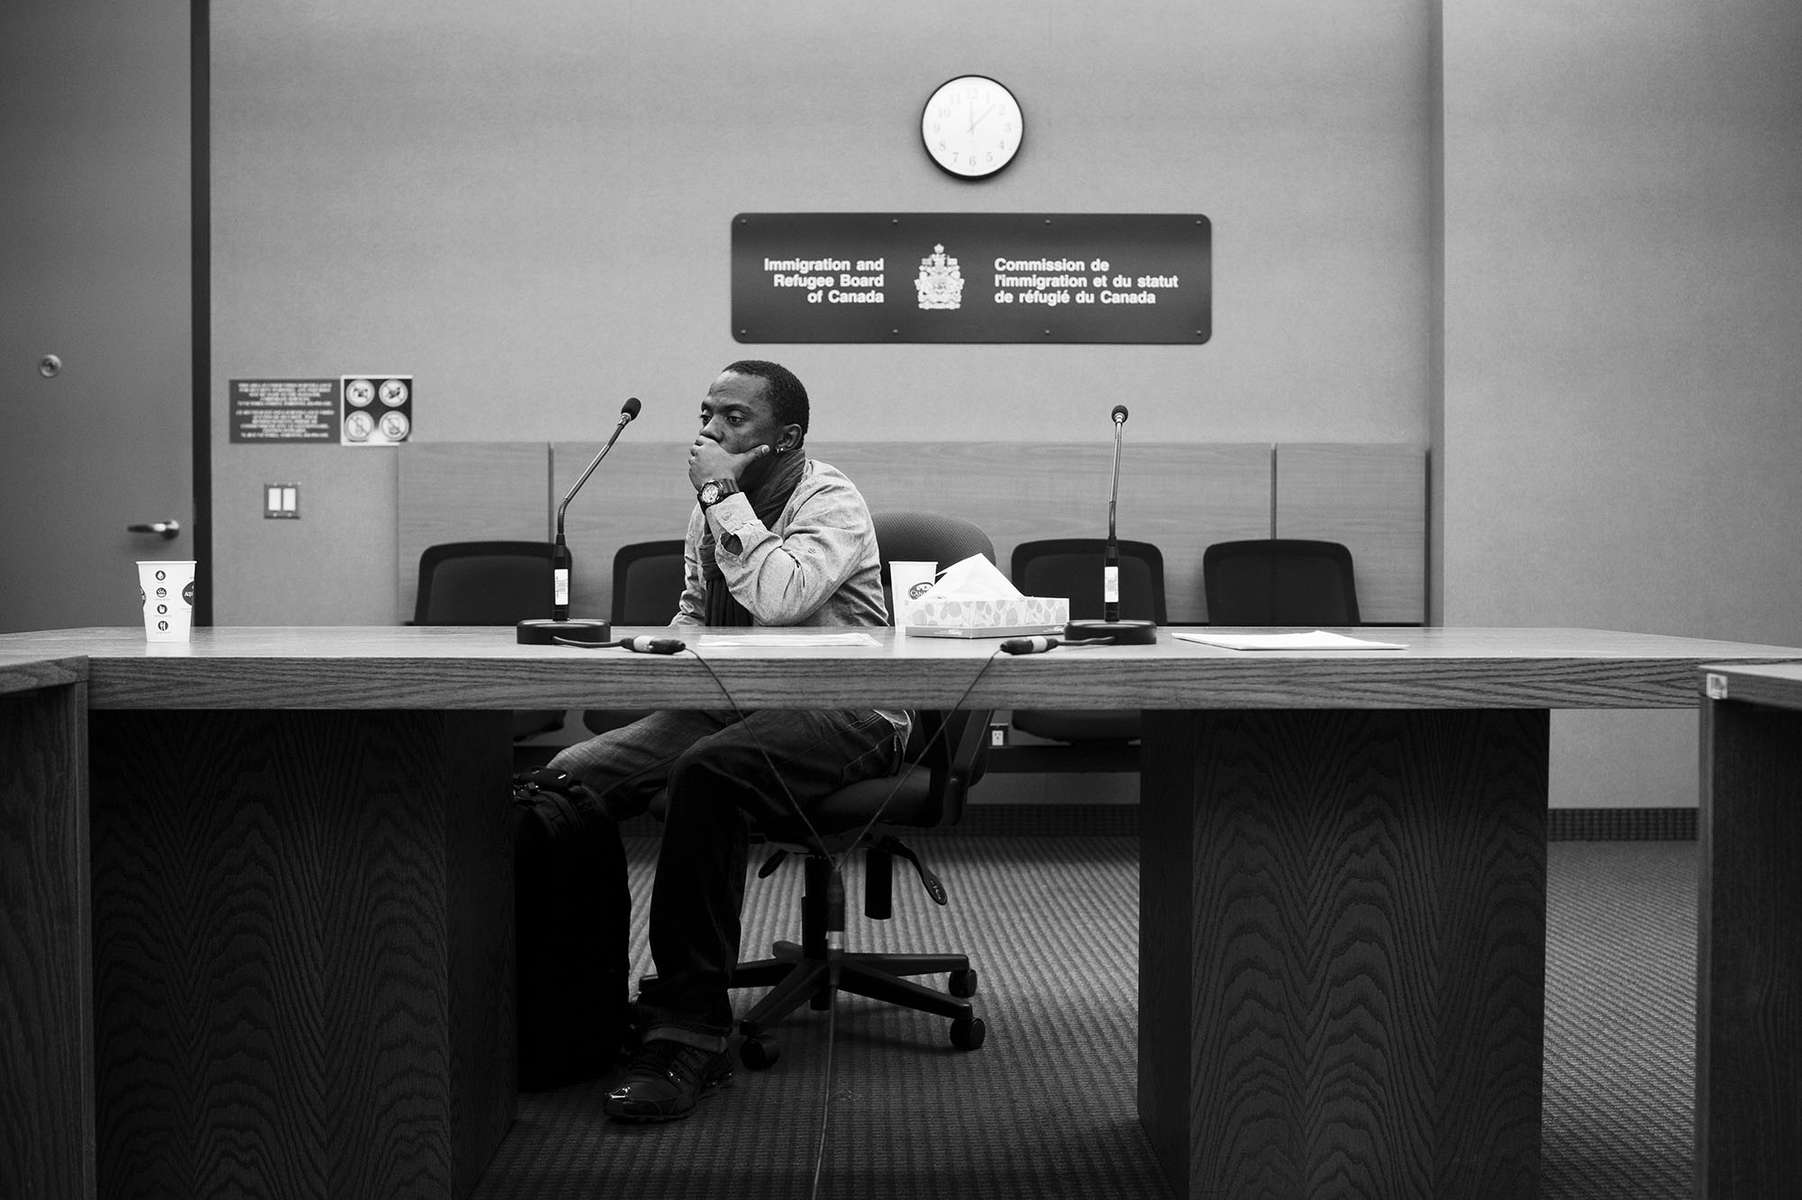 "TORONTO, ON: DECEMBER 2, 2013Abdulah reacts after his hearing at the Immigration and Refugee Board of Canada. He fled Uganda to Canada three days after he was imprisoned and tortured by local police because of his sexual orientation. Being gay in Uganda is a criminal offence and same-sex acts are punishable with life imprisonment.Last December, Mr. Aziz Ssali tried claiming refugee status but was rejected. Shortly after the ""negative"" decision, a Ugandan tabloid newspaper published a list of the country's homosexuals that included his name. He is currently appealing the decision and will be able to present this as additional evidence in his case. If the decision is upheld, he is unsure of where he will go or what he will do."